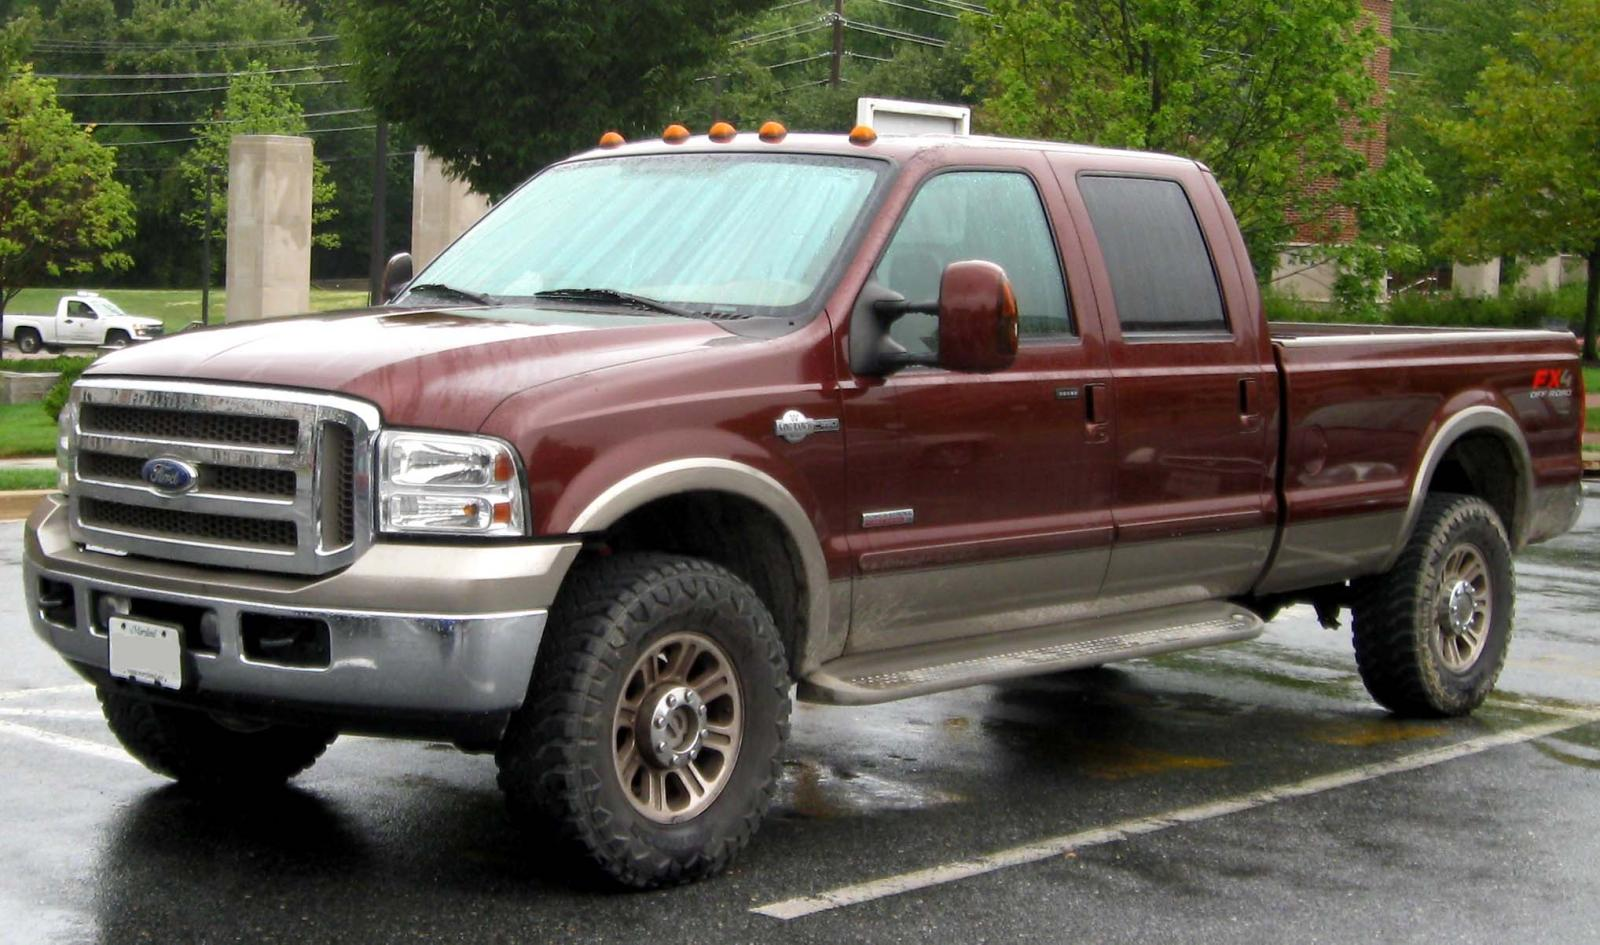 1999 Ford F-350 Super Duty - Information And Photos